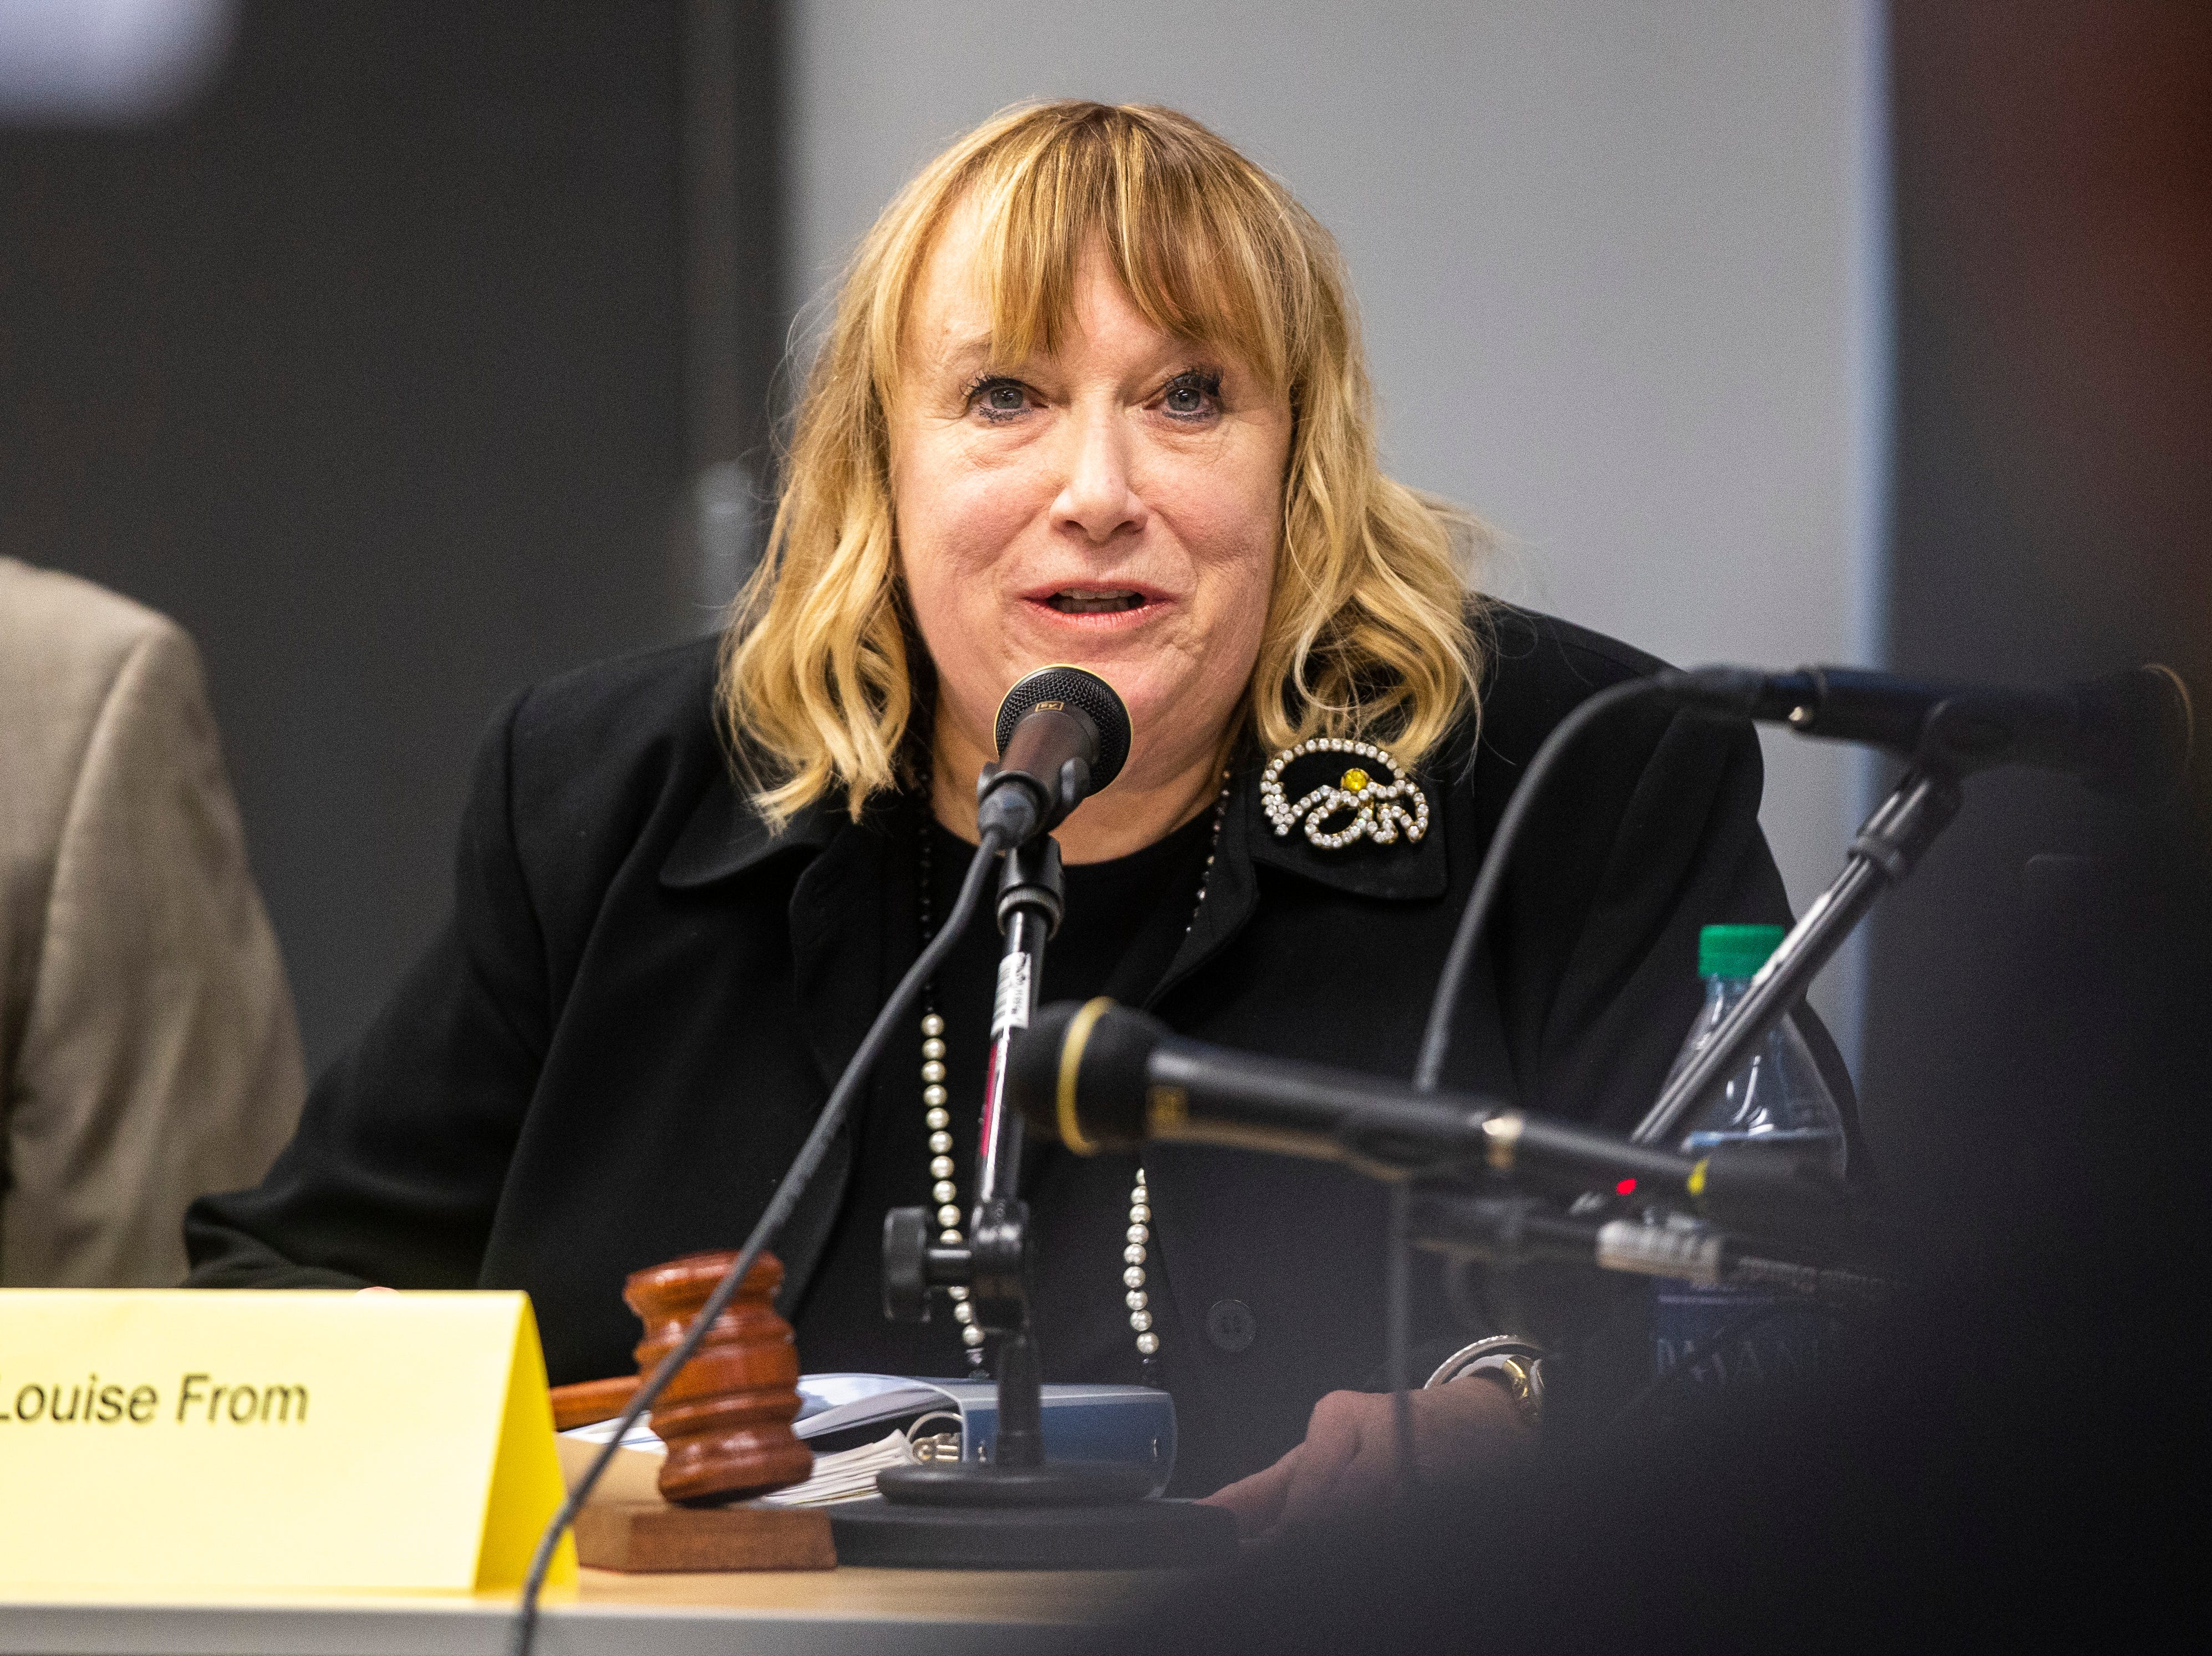 University Heights Mayor Louise From speaks, Tuesday, May 14, 2019, at City Hall in University Heights, Iowa.